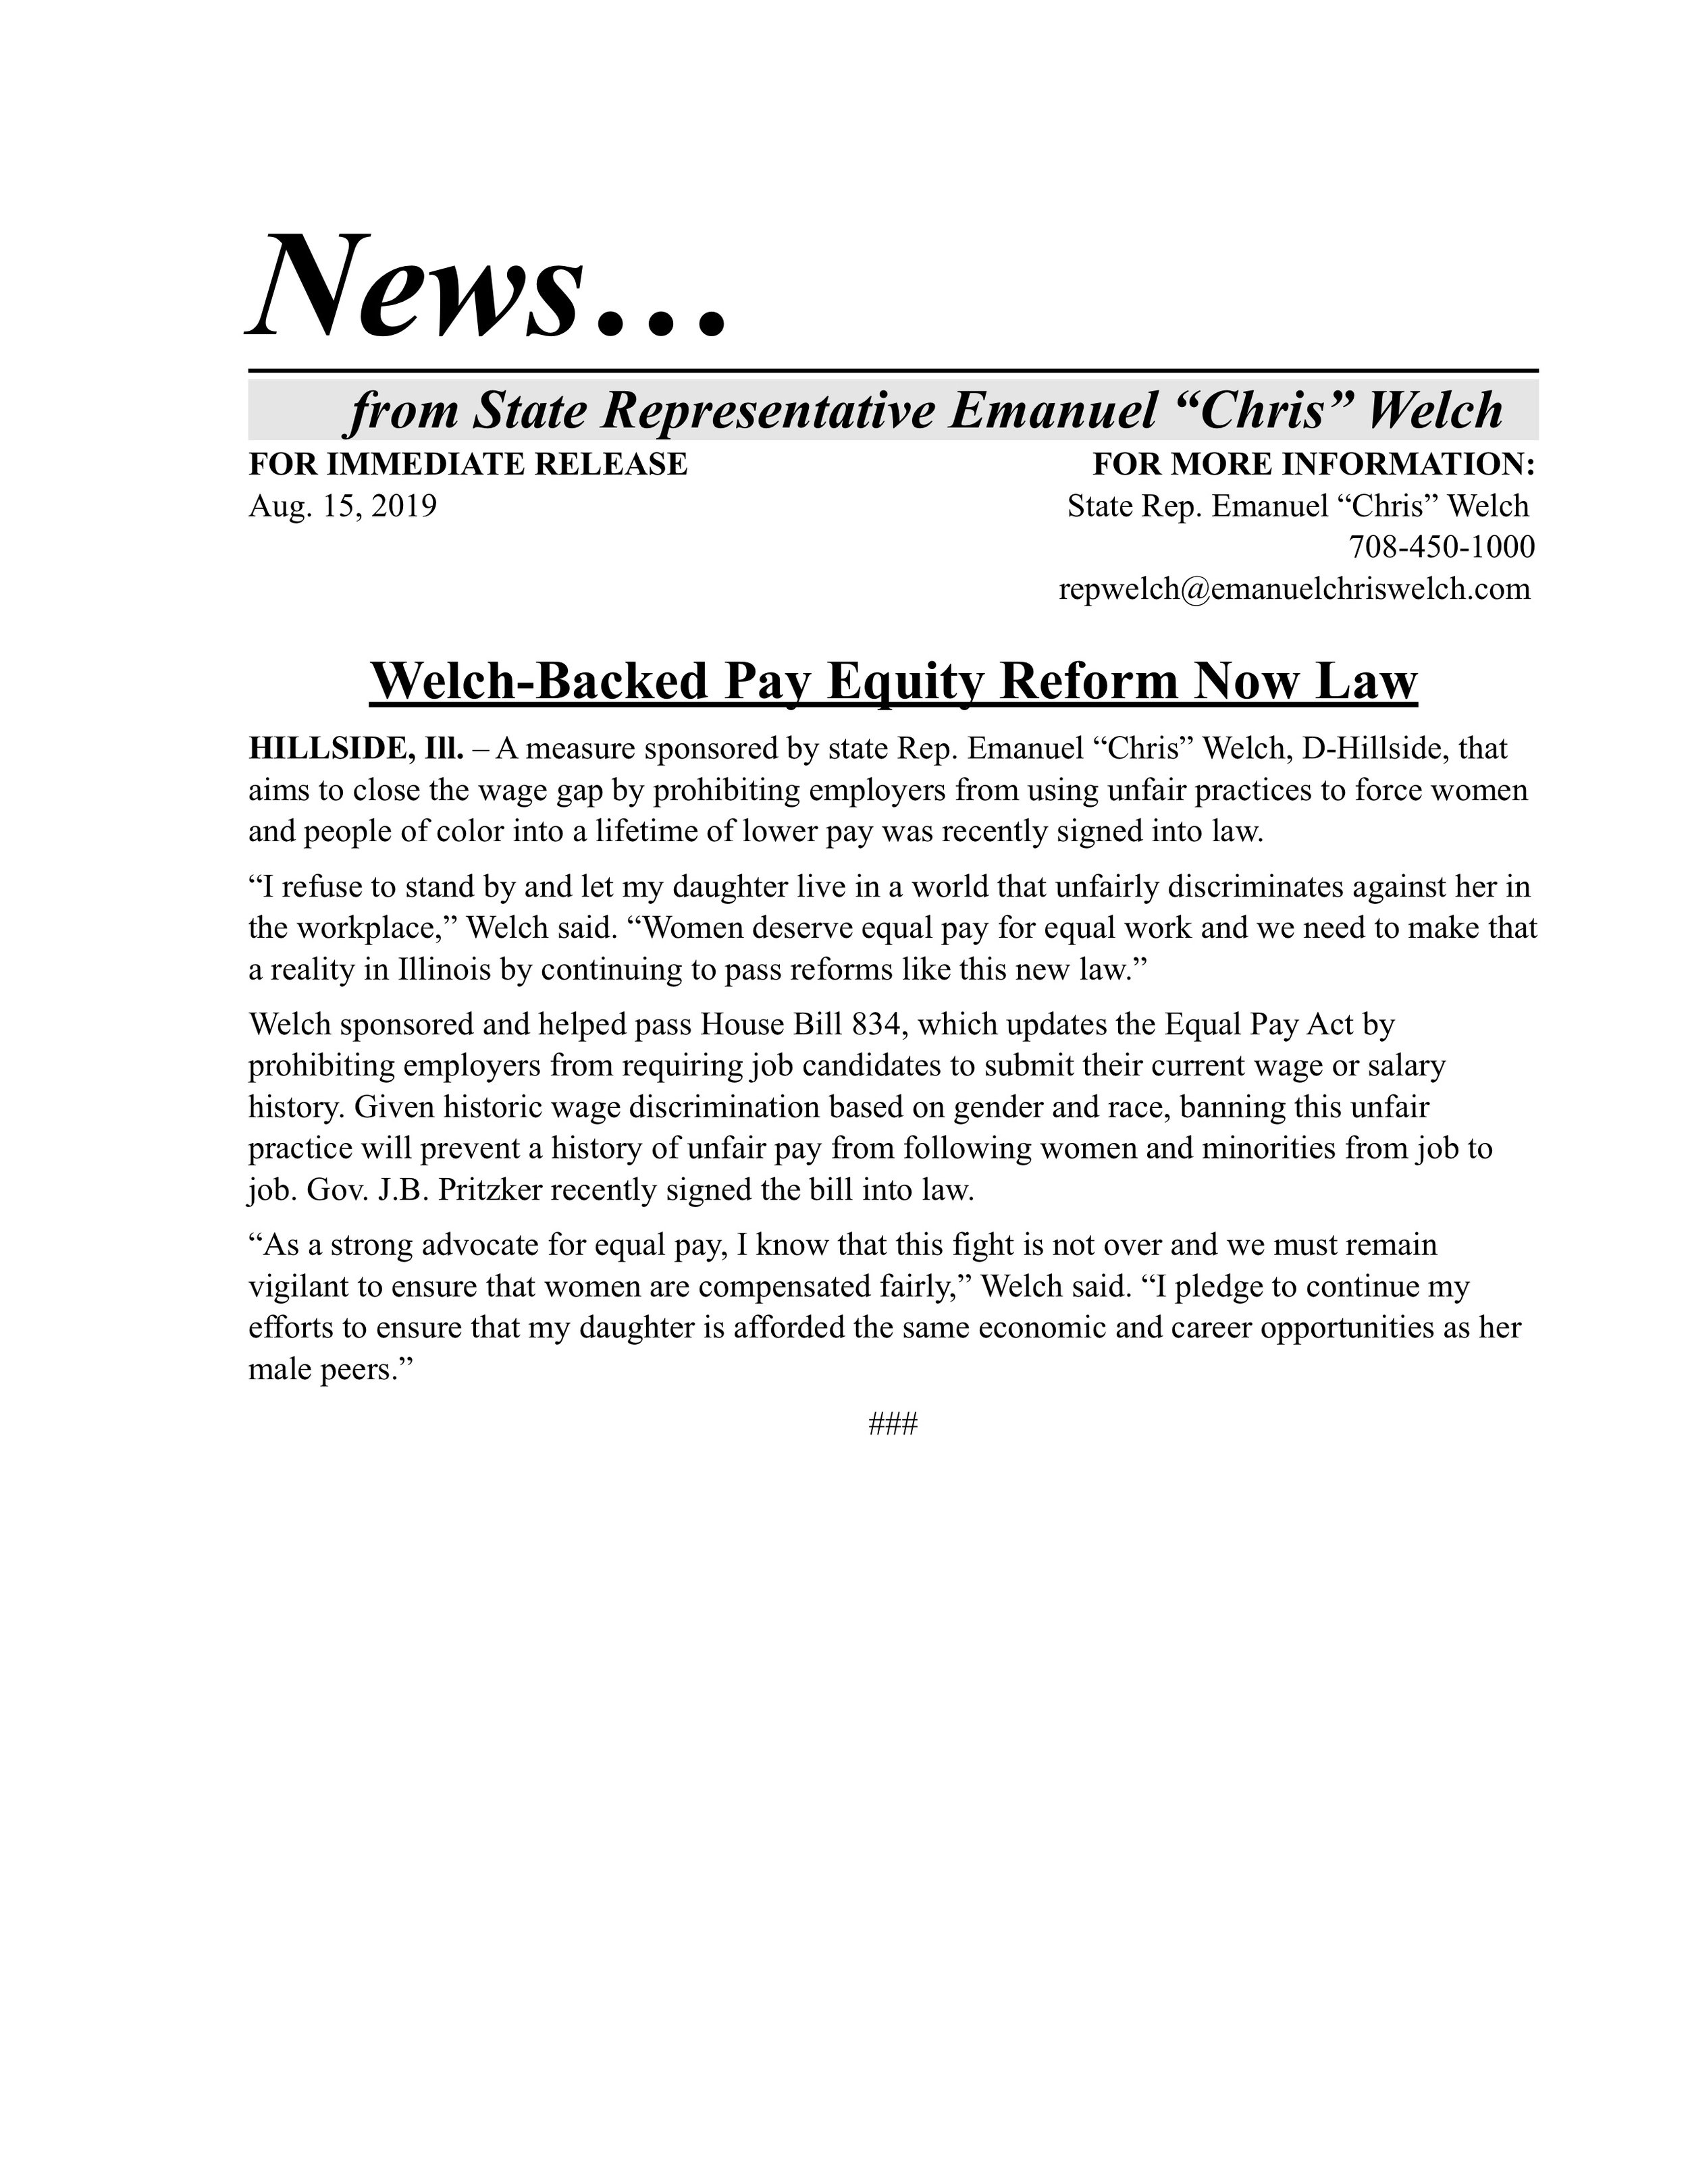 Welch-Backed Pay Equity Reform Now Law  (August 15, 2019)